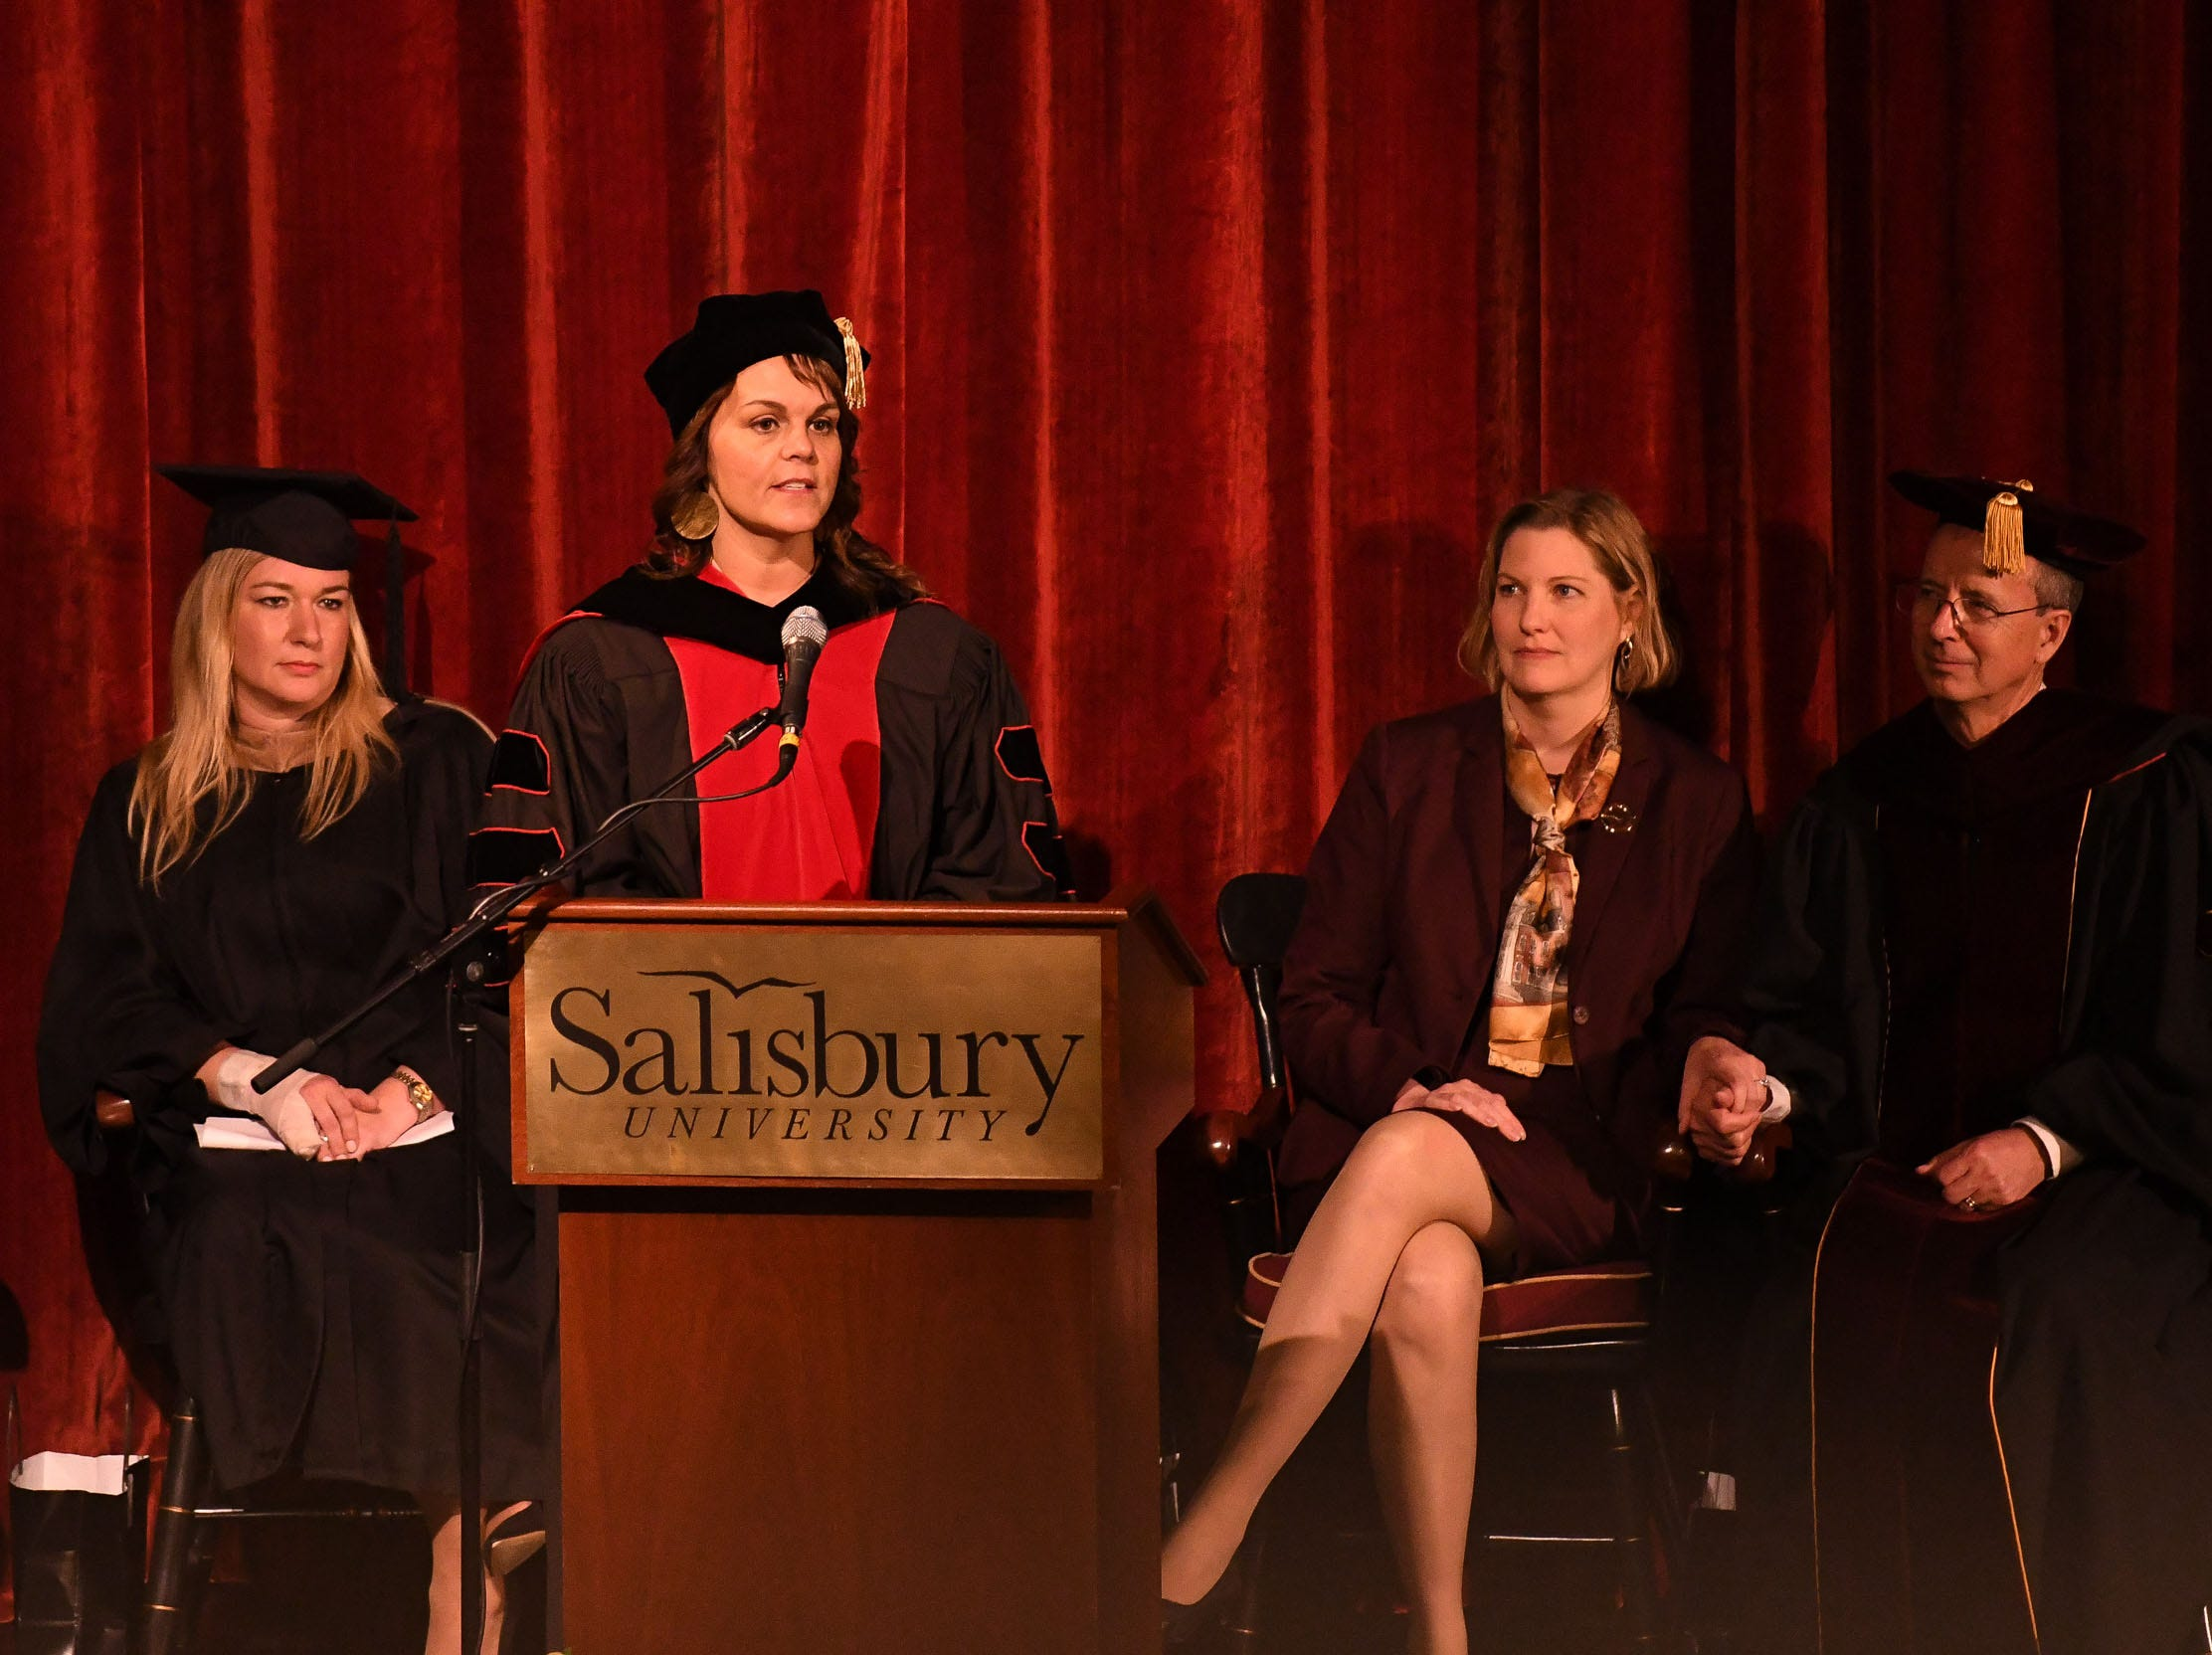 Dr. Jennifer Jewell, Vice President, Salisbury University Faculty Senate, speaks during the inauguration of Dr. Charles A. Wight as Salisbury University's ninth president on Wednesday, April 10, 2019 during a ceremony held at Holloway Hall on the campus of Salisbury University.